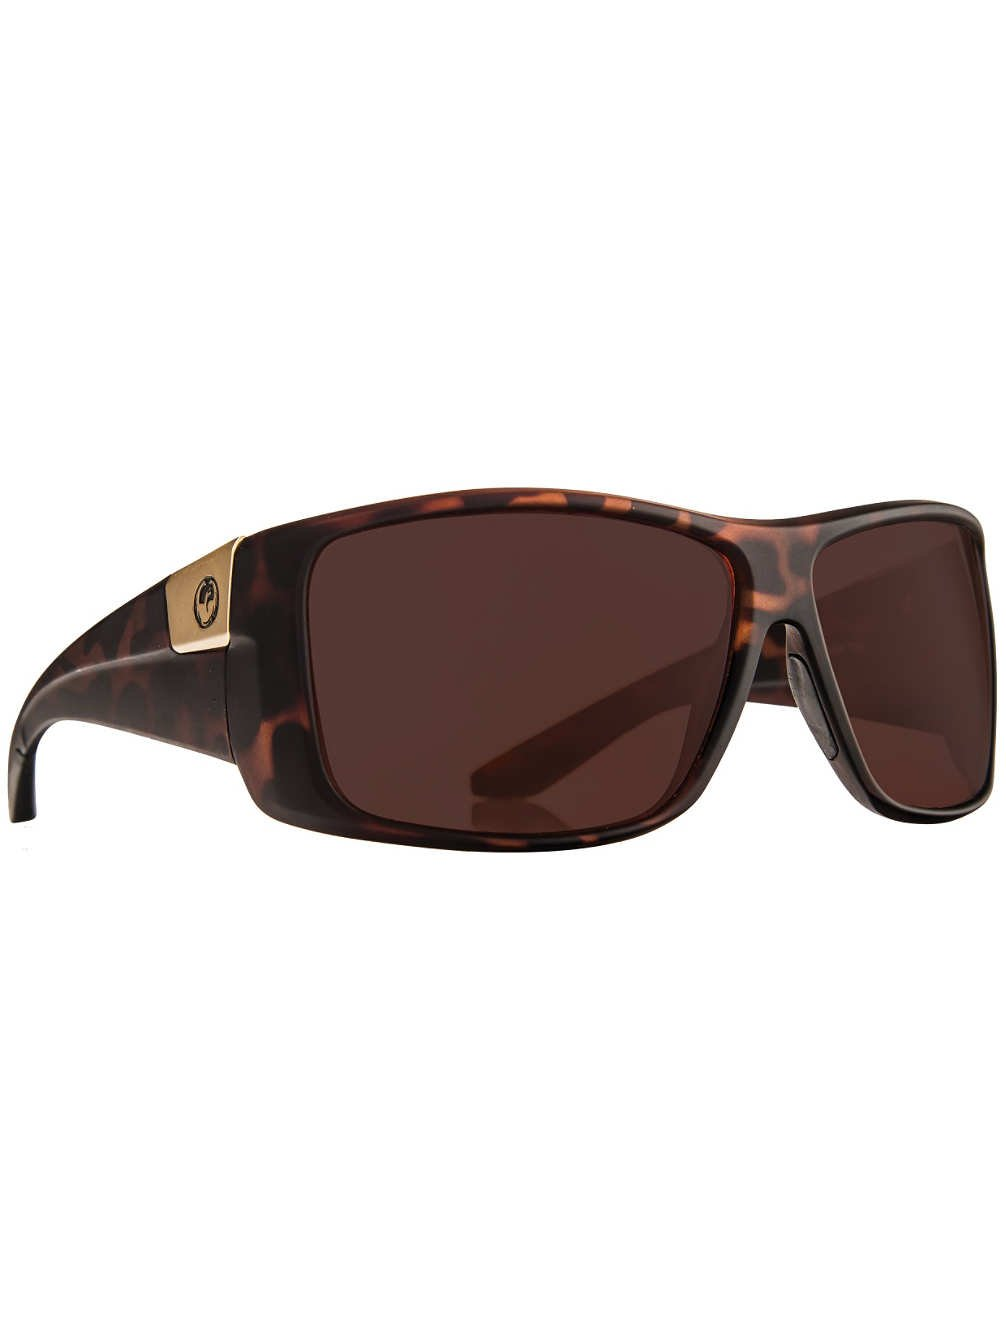 Dragon Mens Kit Polarized Large Fit Sunglasses, Matte Tortoise/Copper, One Size